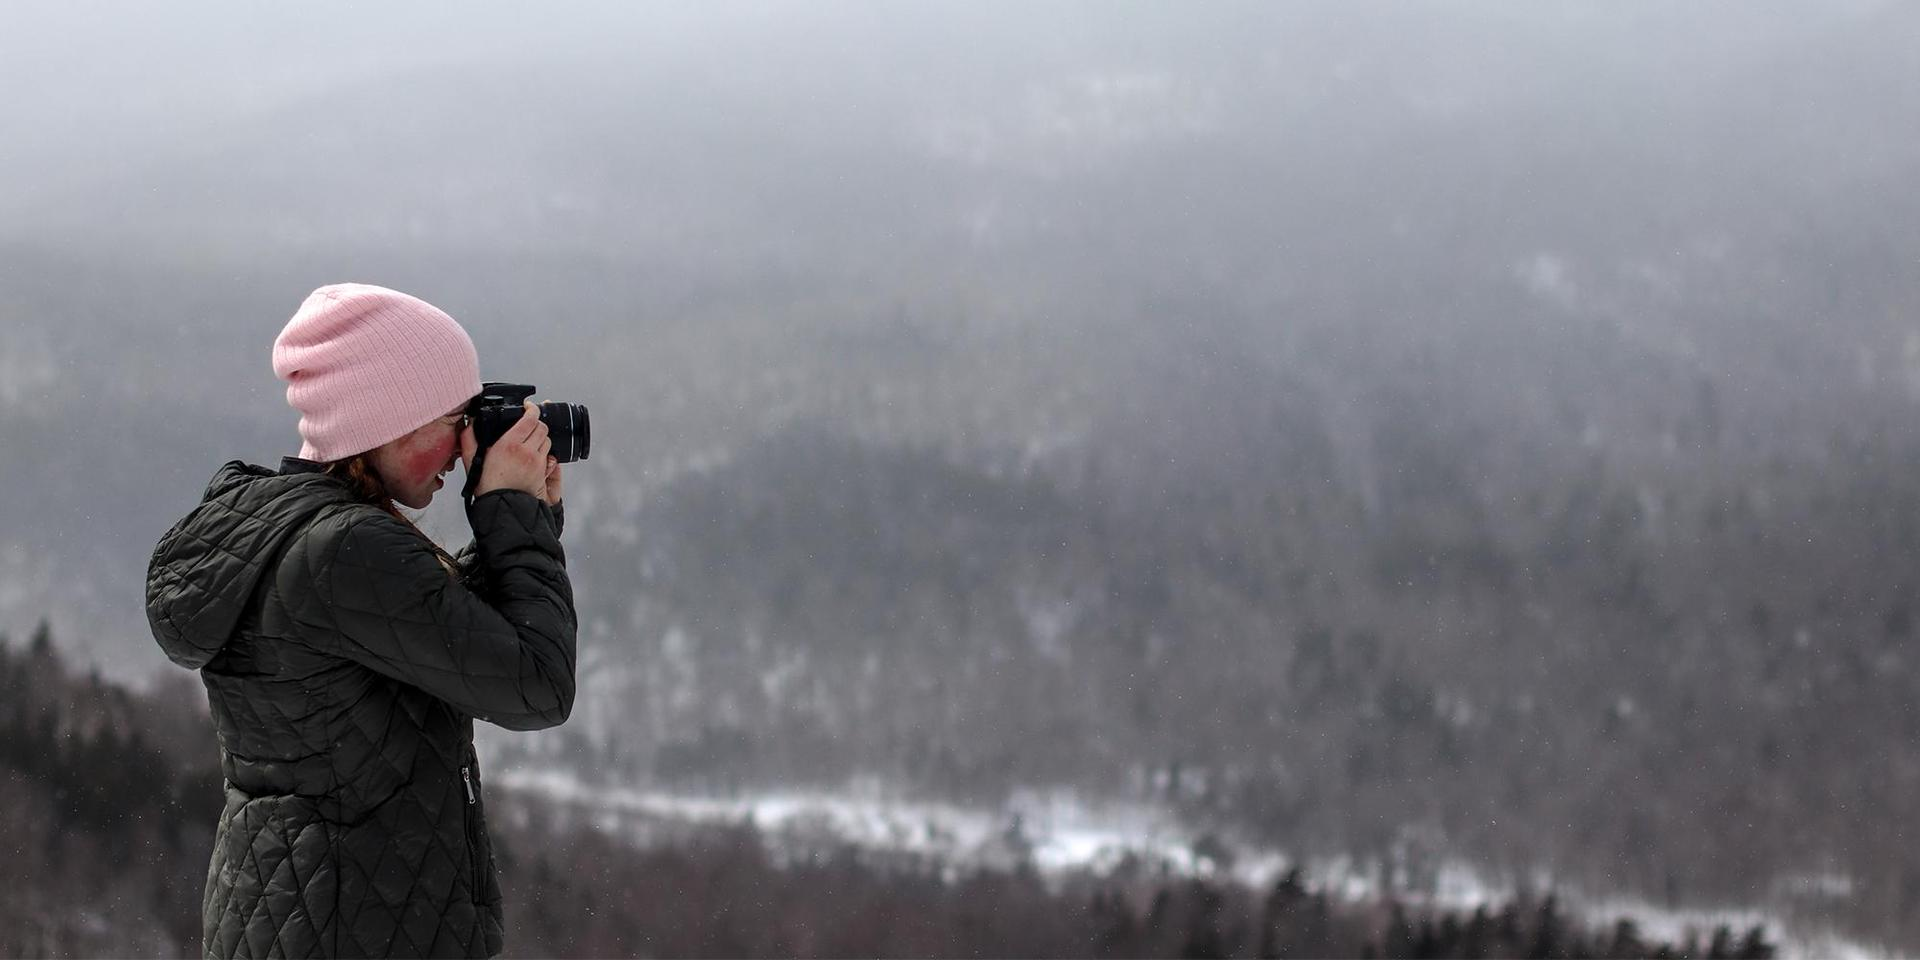 A student practicing winter photography in the White Mountains.